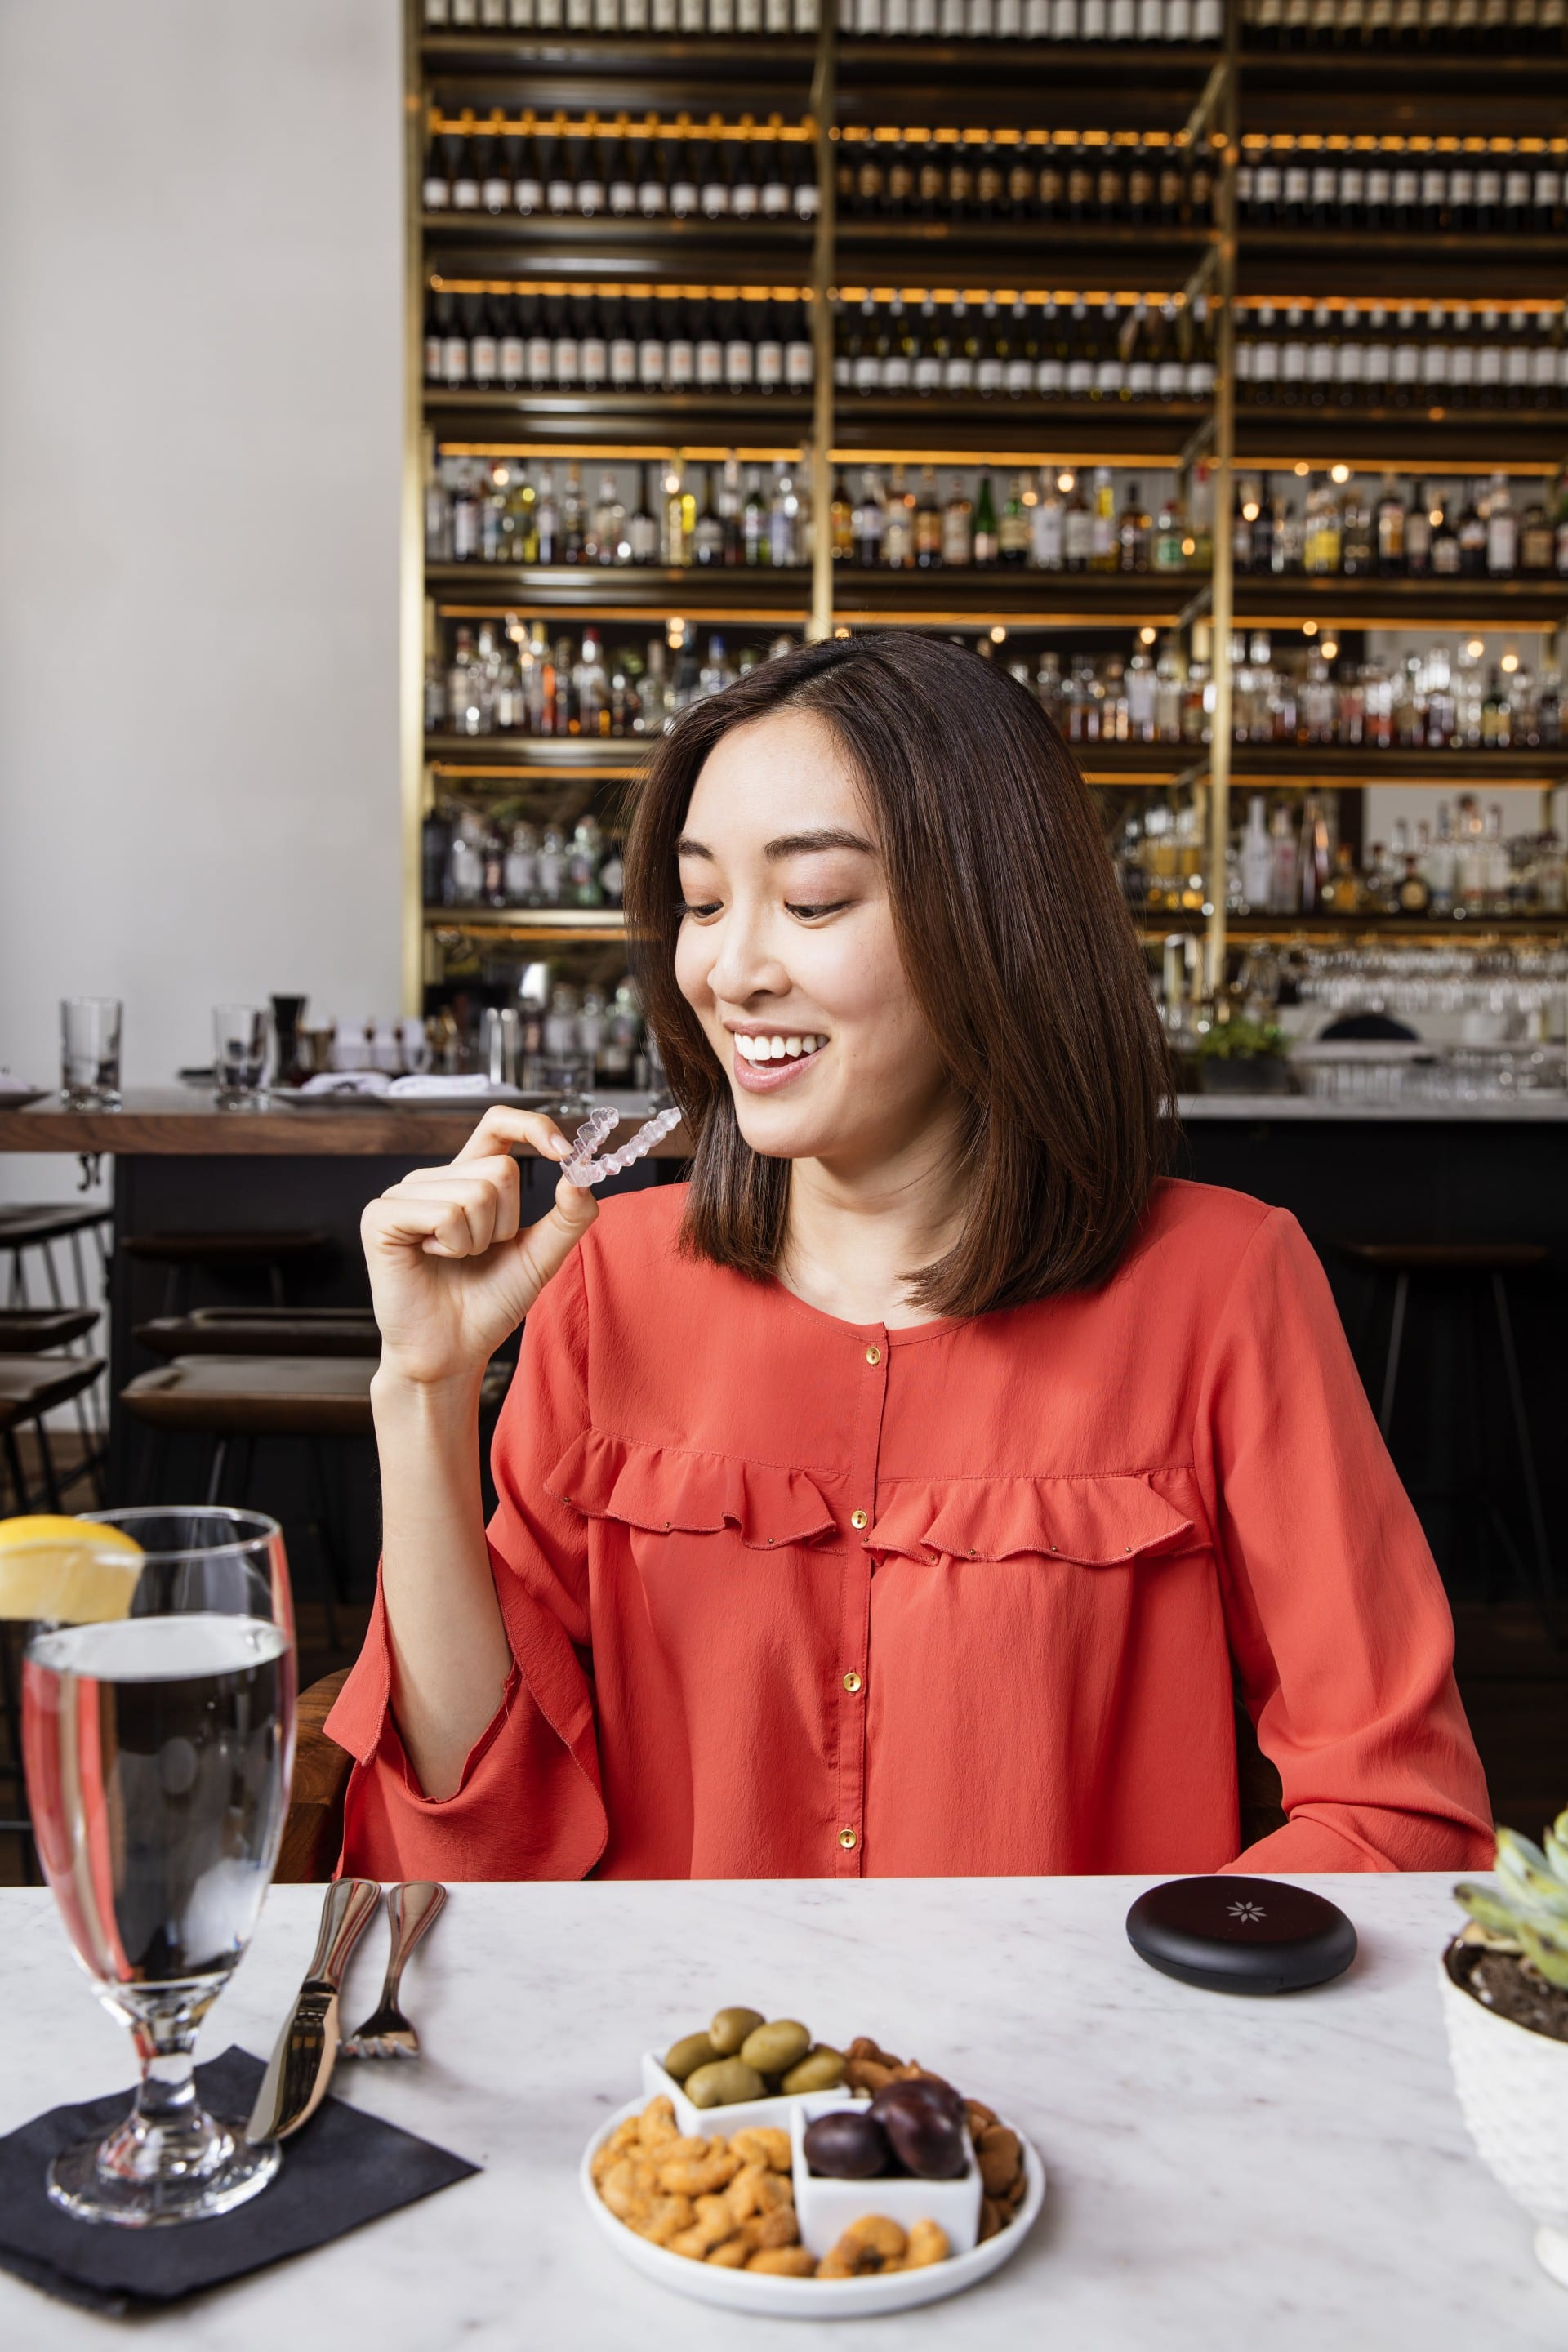 Smiling woman removing her Invisalign® clear aligner before eating at a restaurant